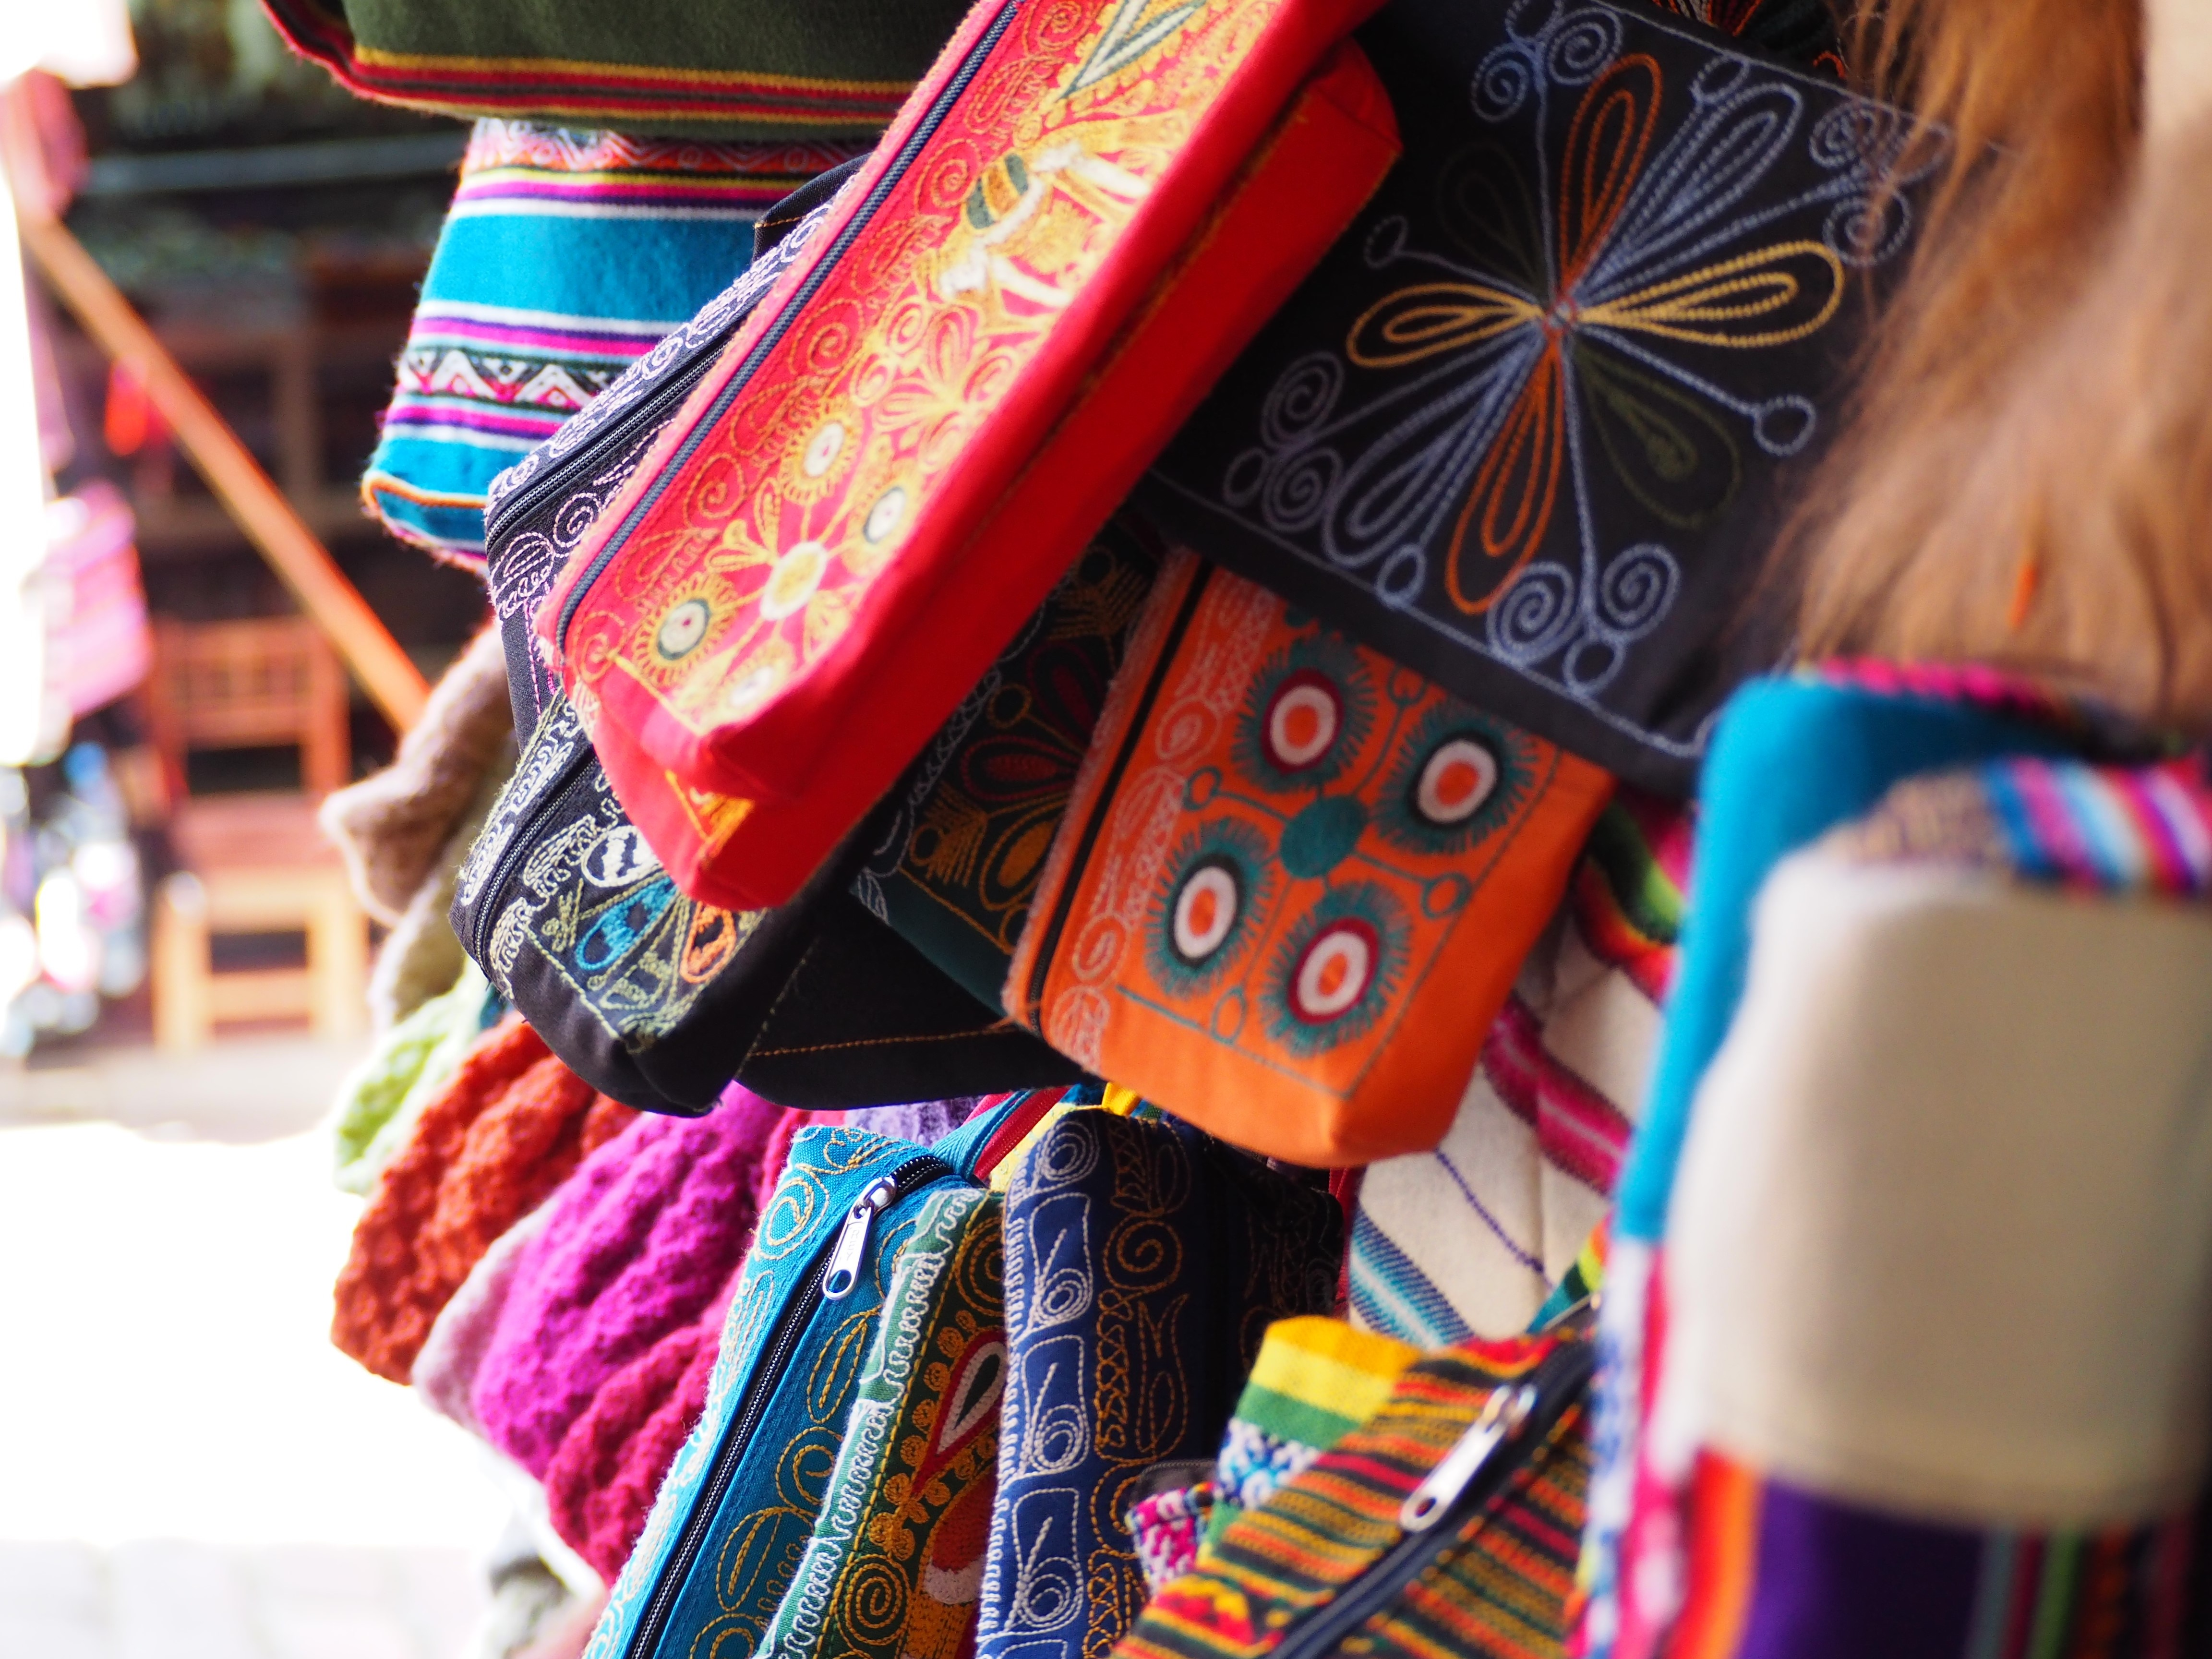 artisan bags in the tourist district